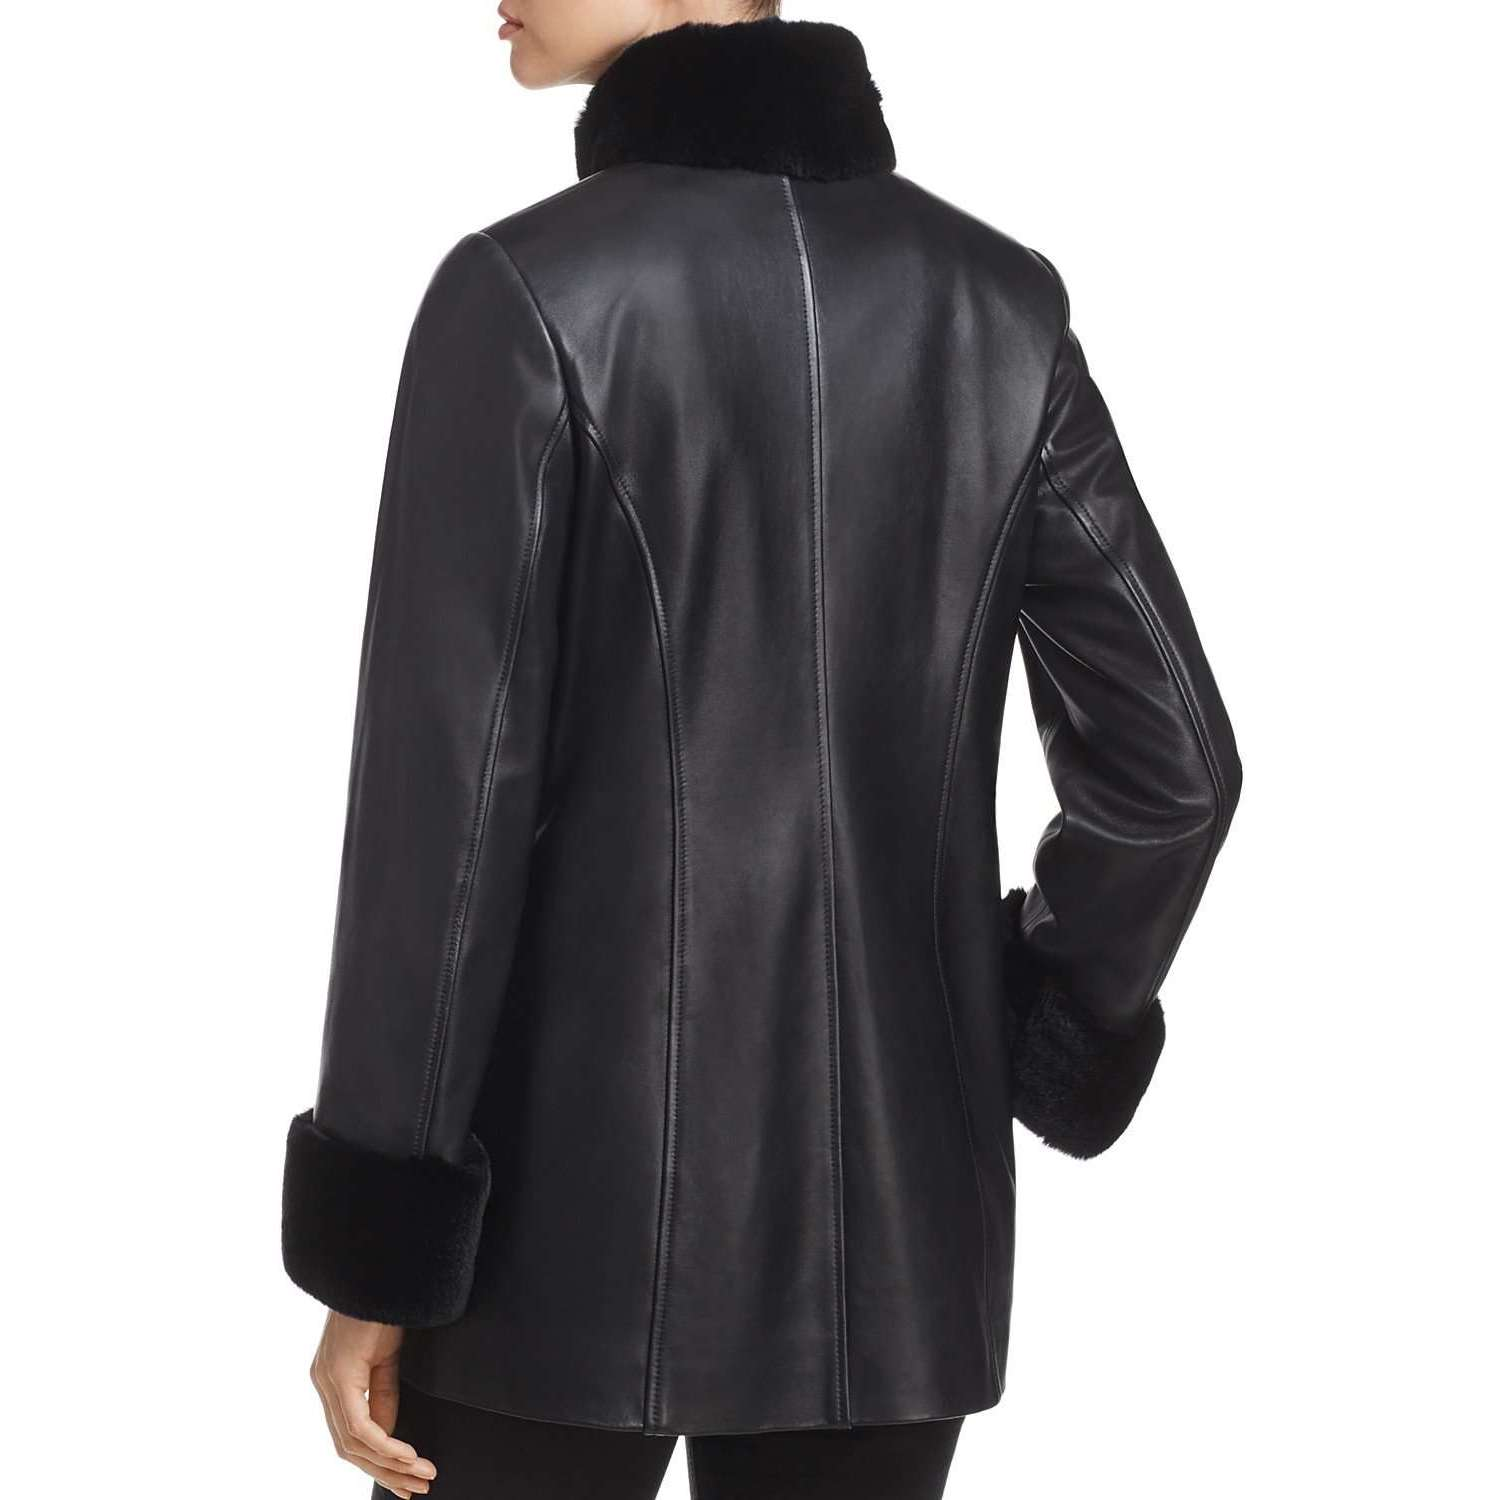 CHOWKANDI - FUR COLLAR LEATHER JACKET